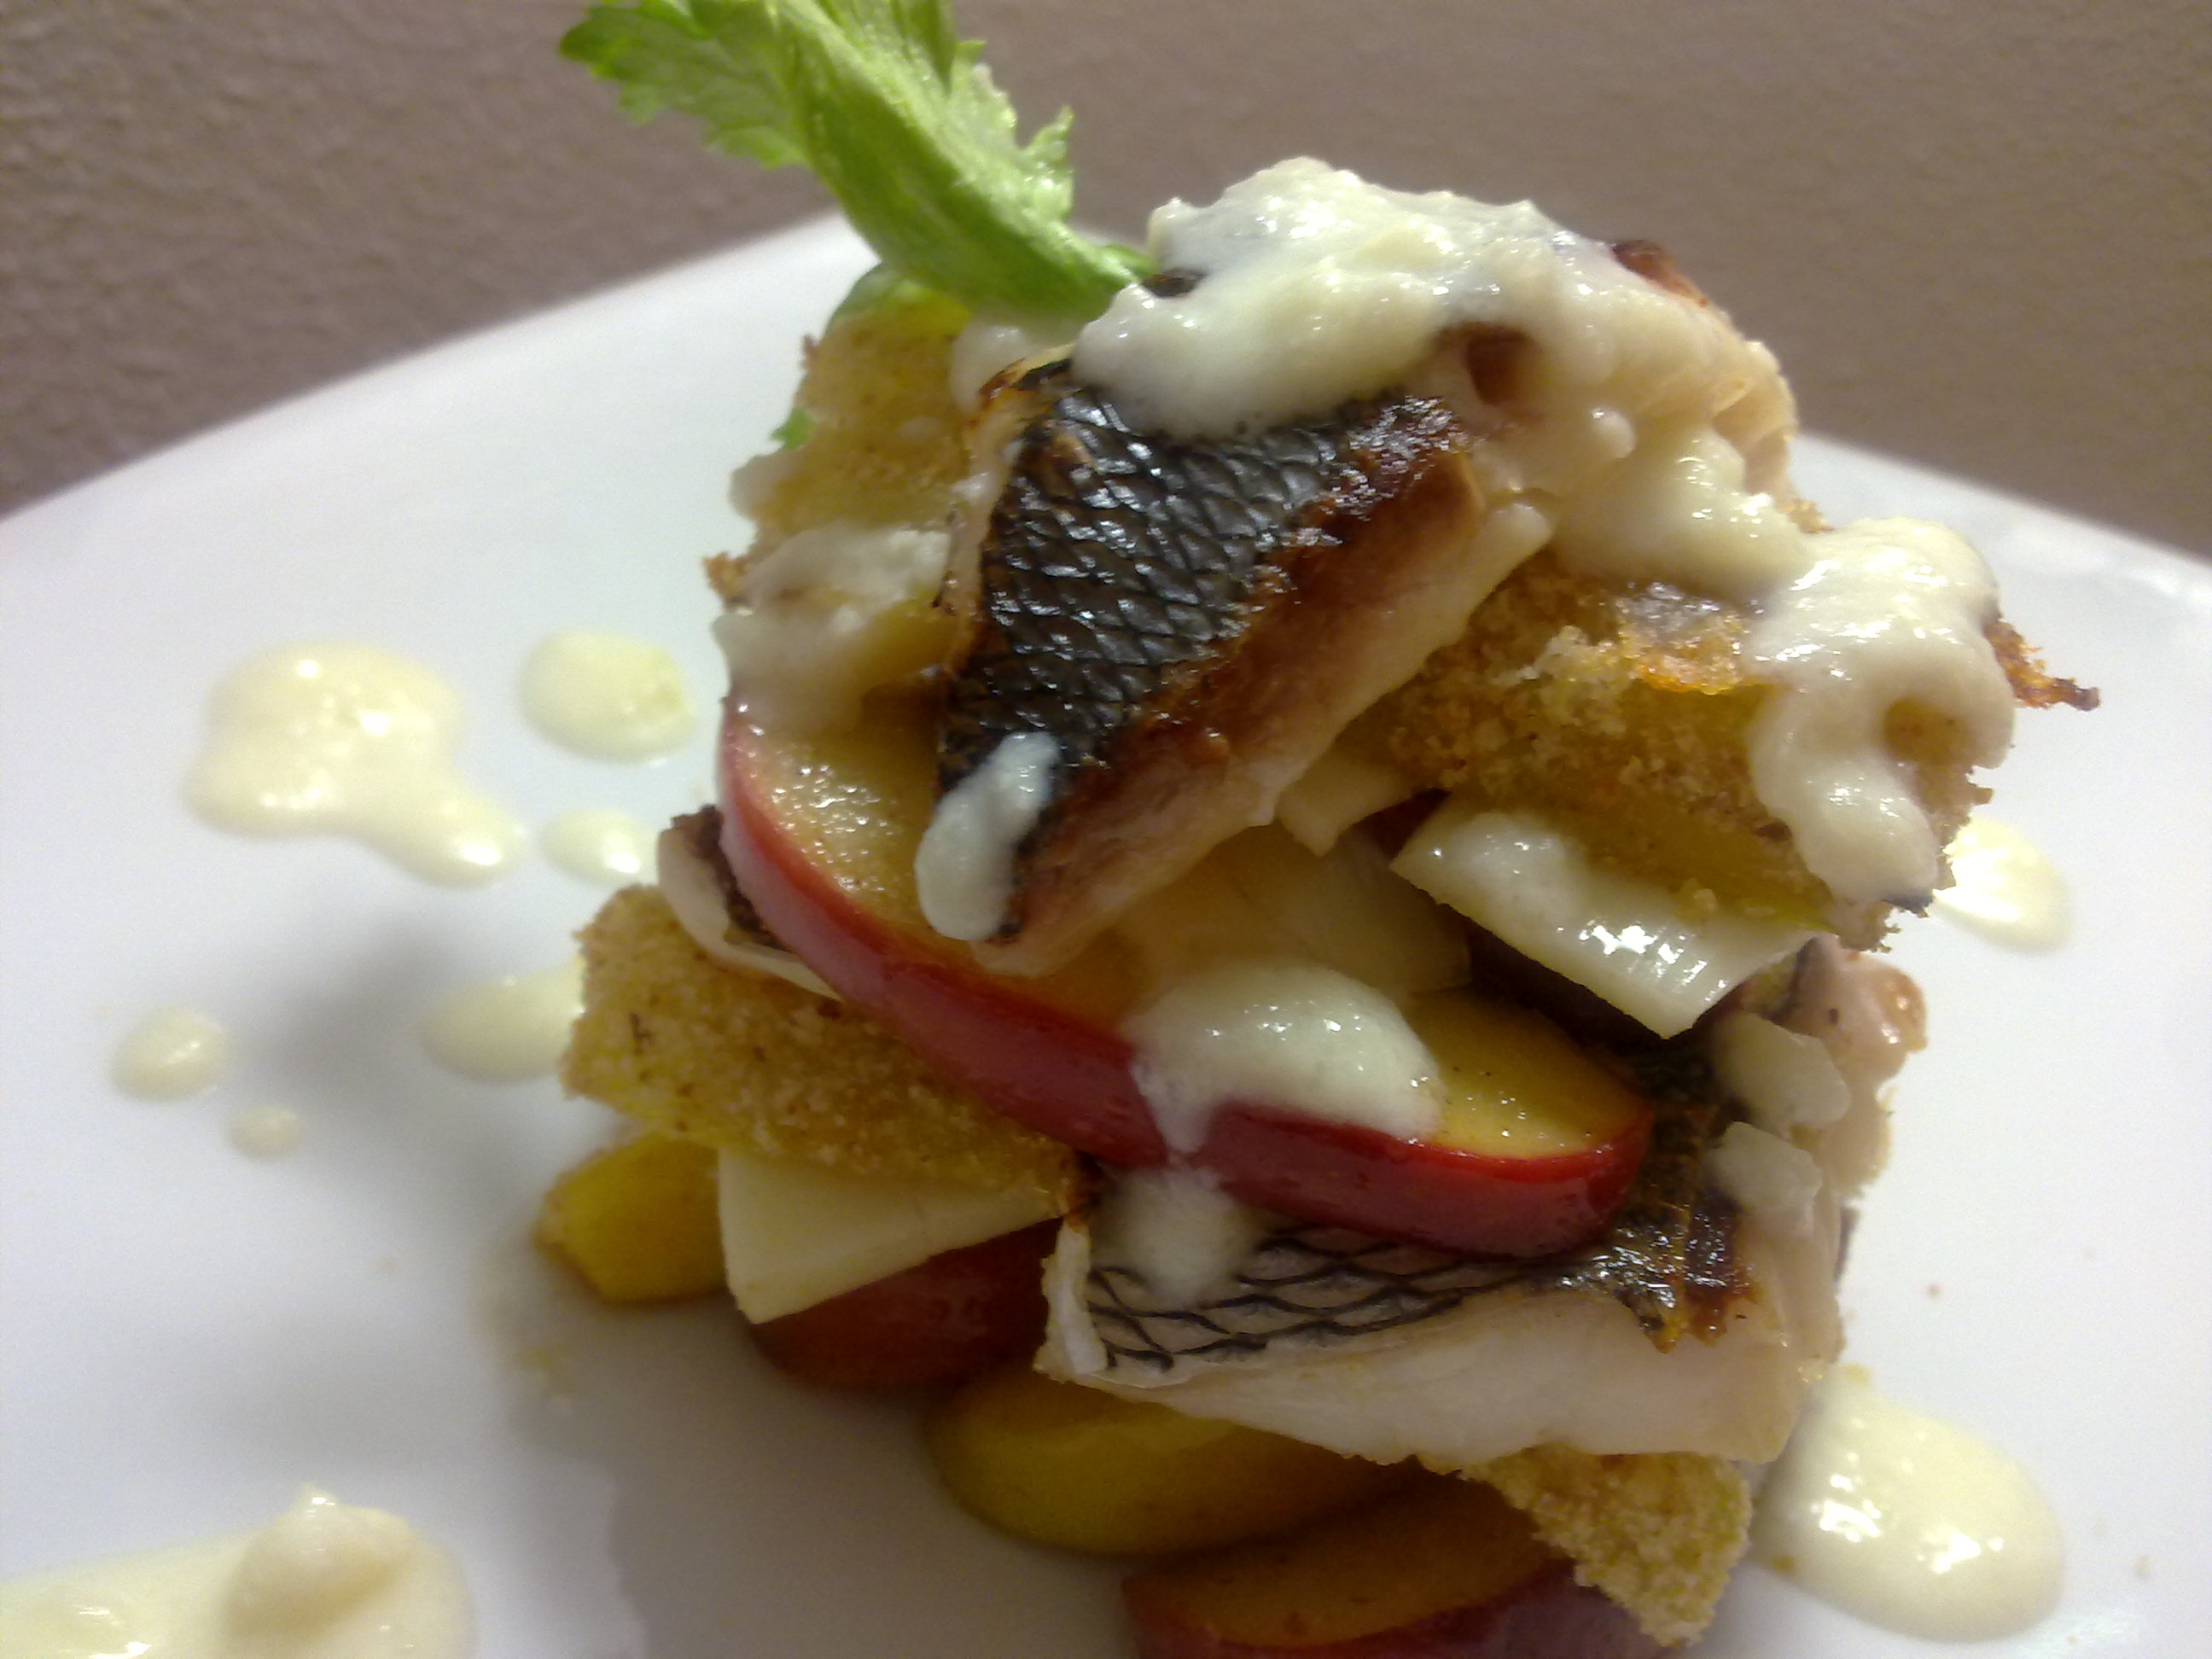 Milfoil of celery, see bass, cheese and glazed canella apples